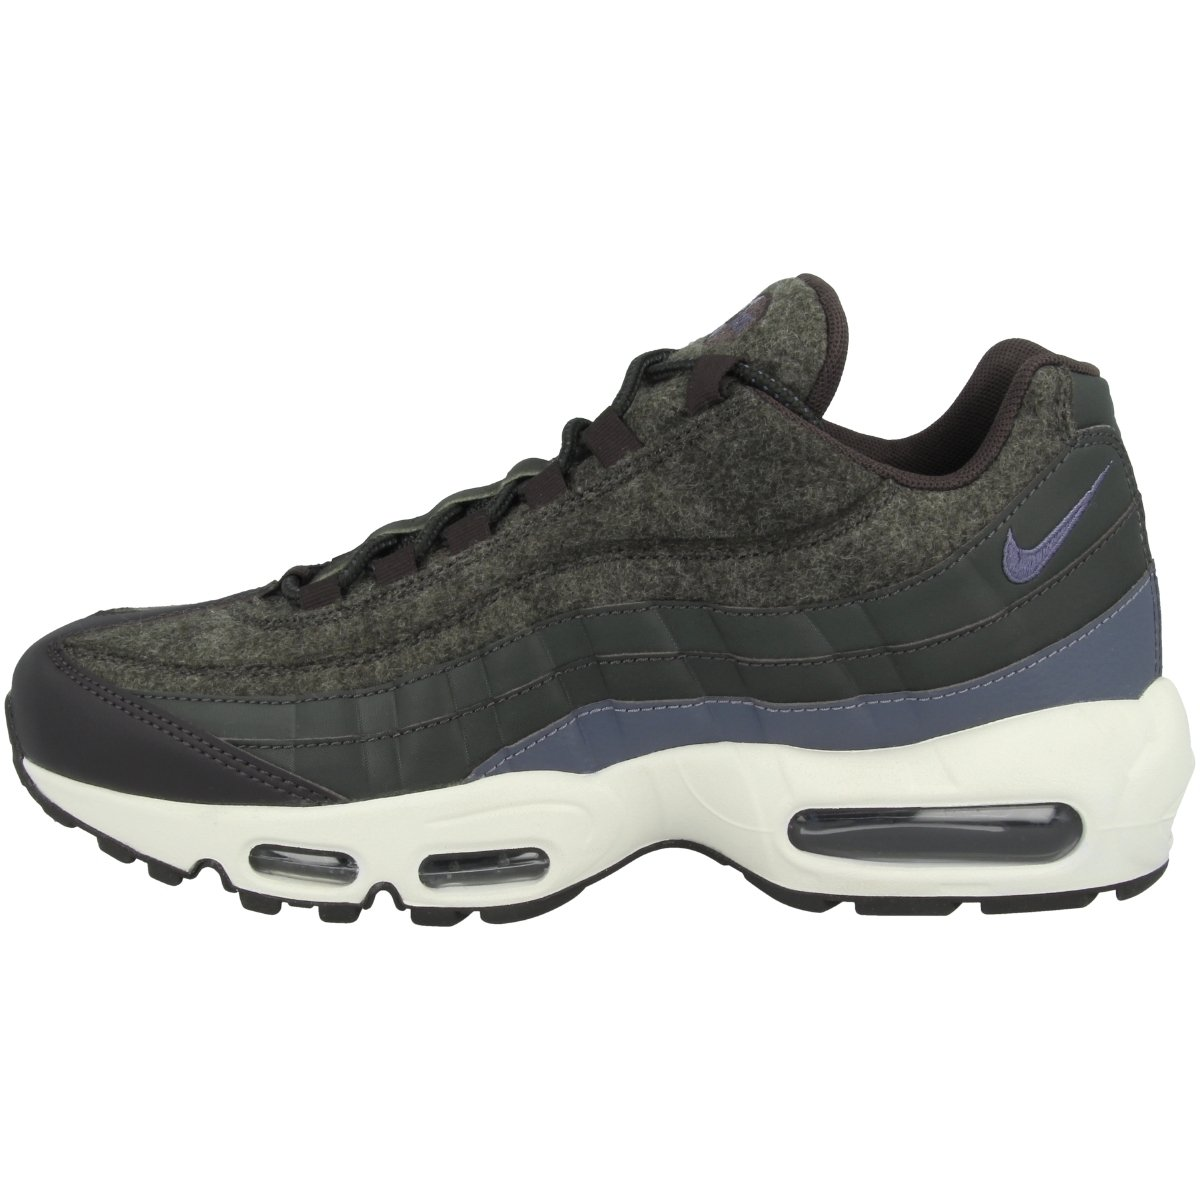 Nike Zapatillas Air Max 95 PRM Sequoia/C 40 EU|Sequoia-light Carbon-velvet Brown (538416-300)